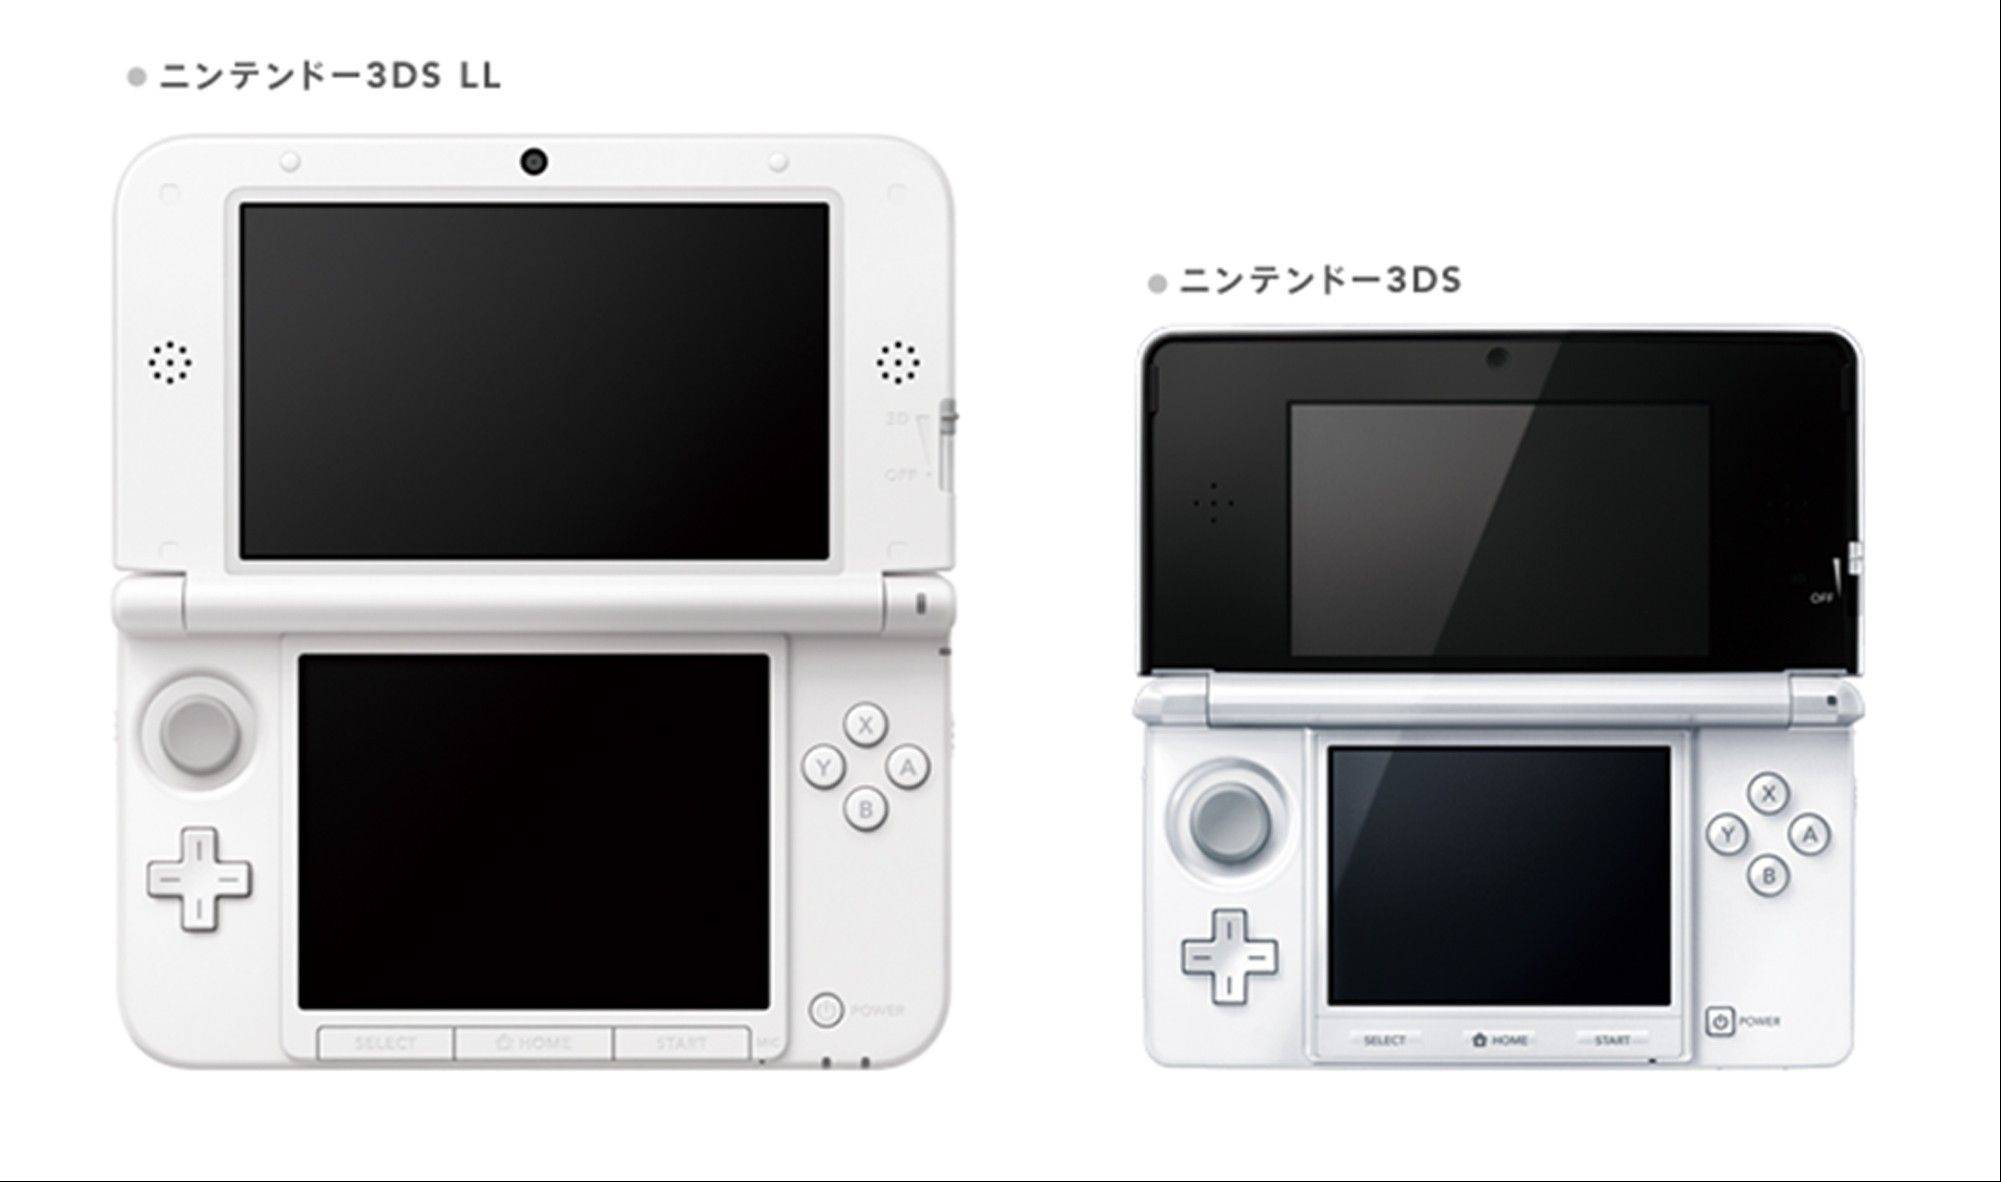 Nintendo has upgraded its 3DS handheld to sport a screen nearly twice as big as the previous model amid hot competition against smartphones and tablets that are wooing people away from dedicated gaming machines.